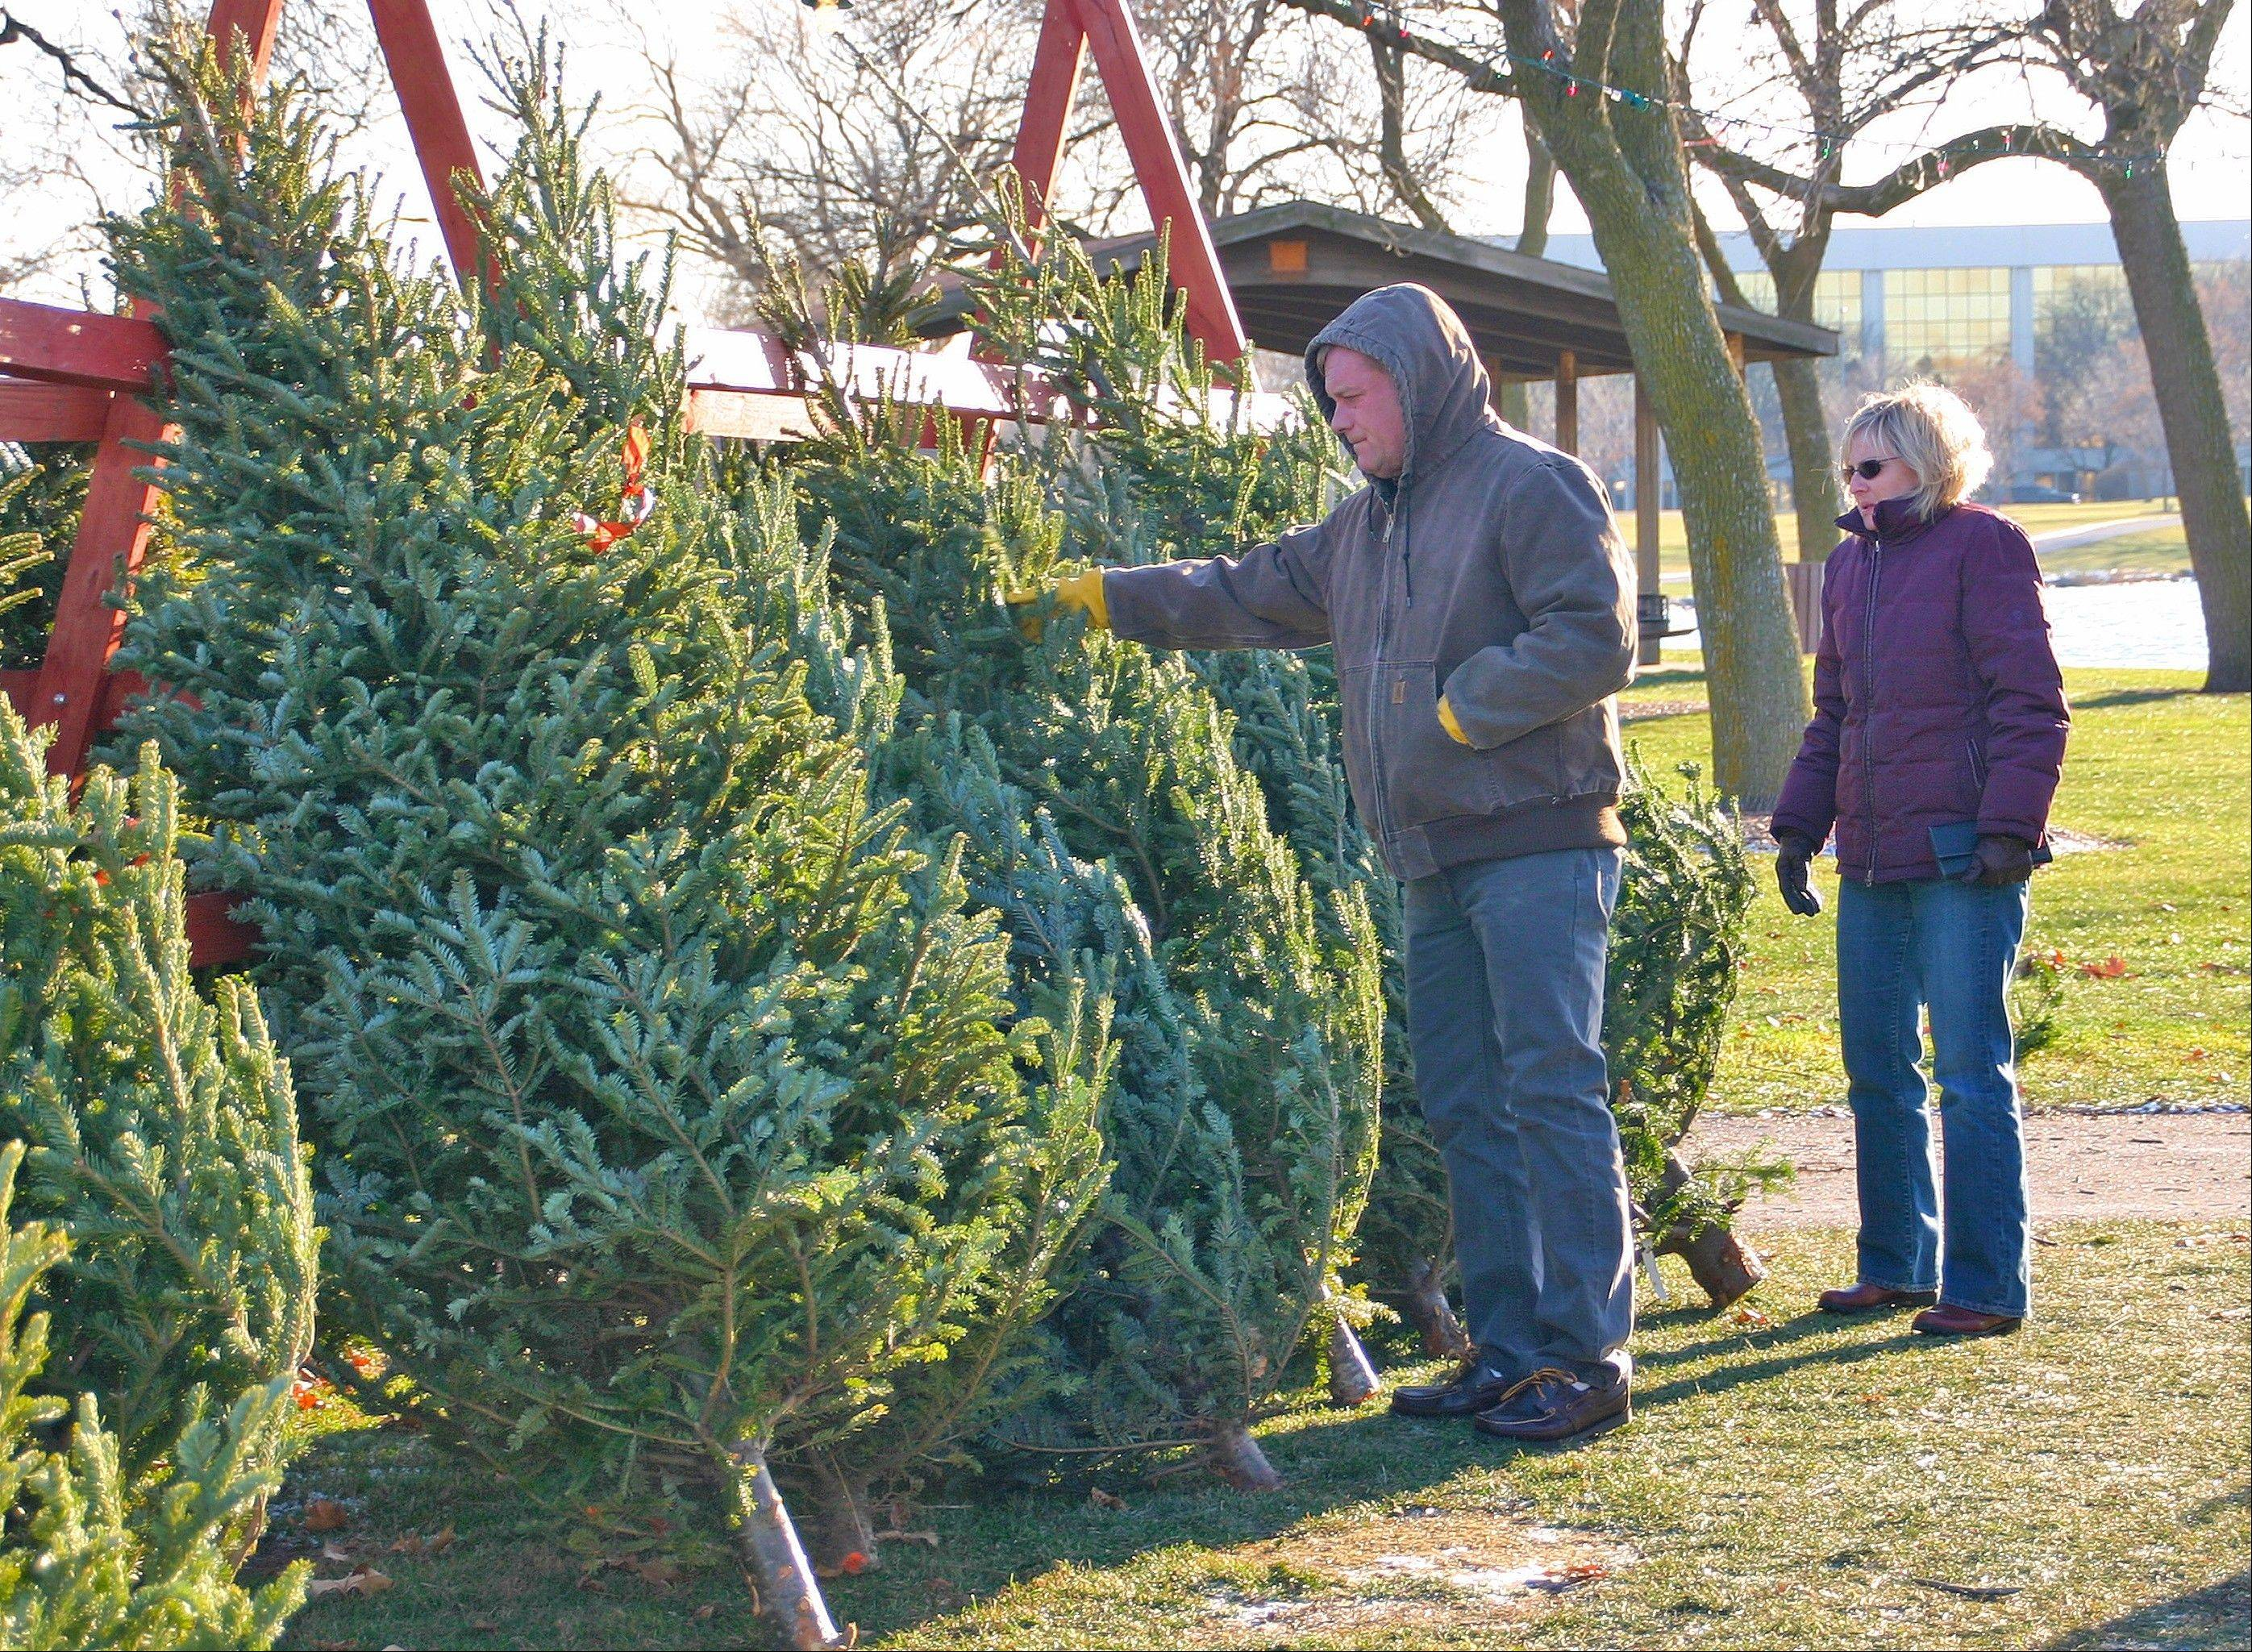 A couple browses the 2011 Optimist Holiday Tree Lot that featured Balsam firs, Scotch pines and Frasier firs seen here.